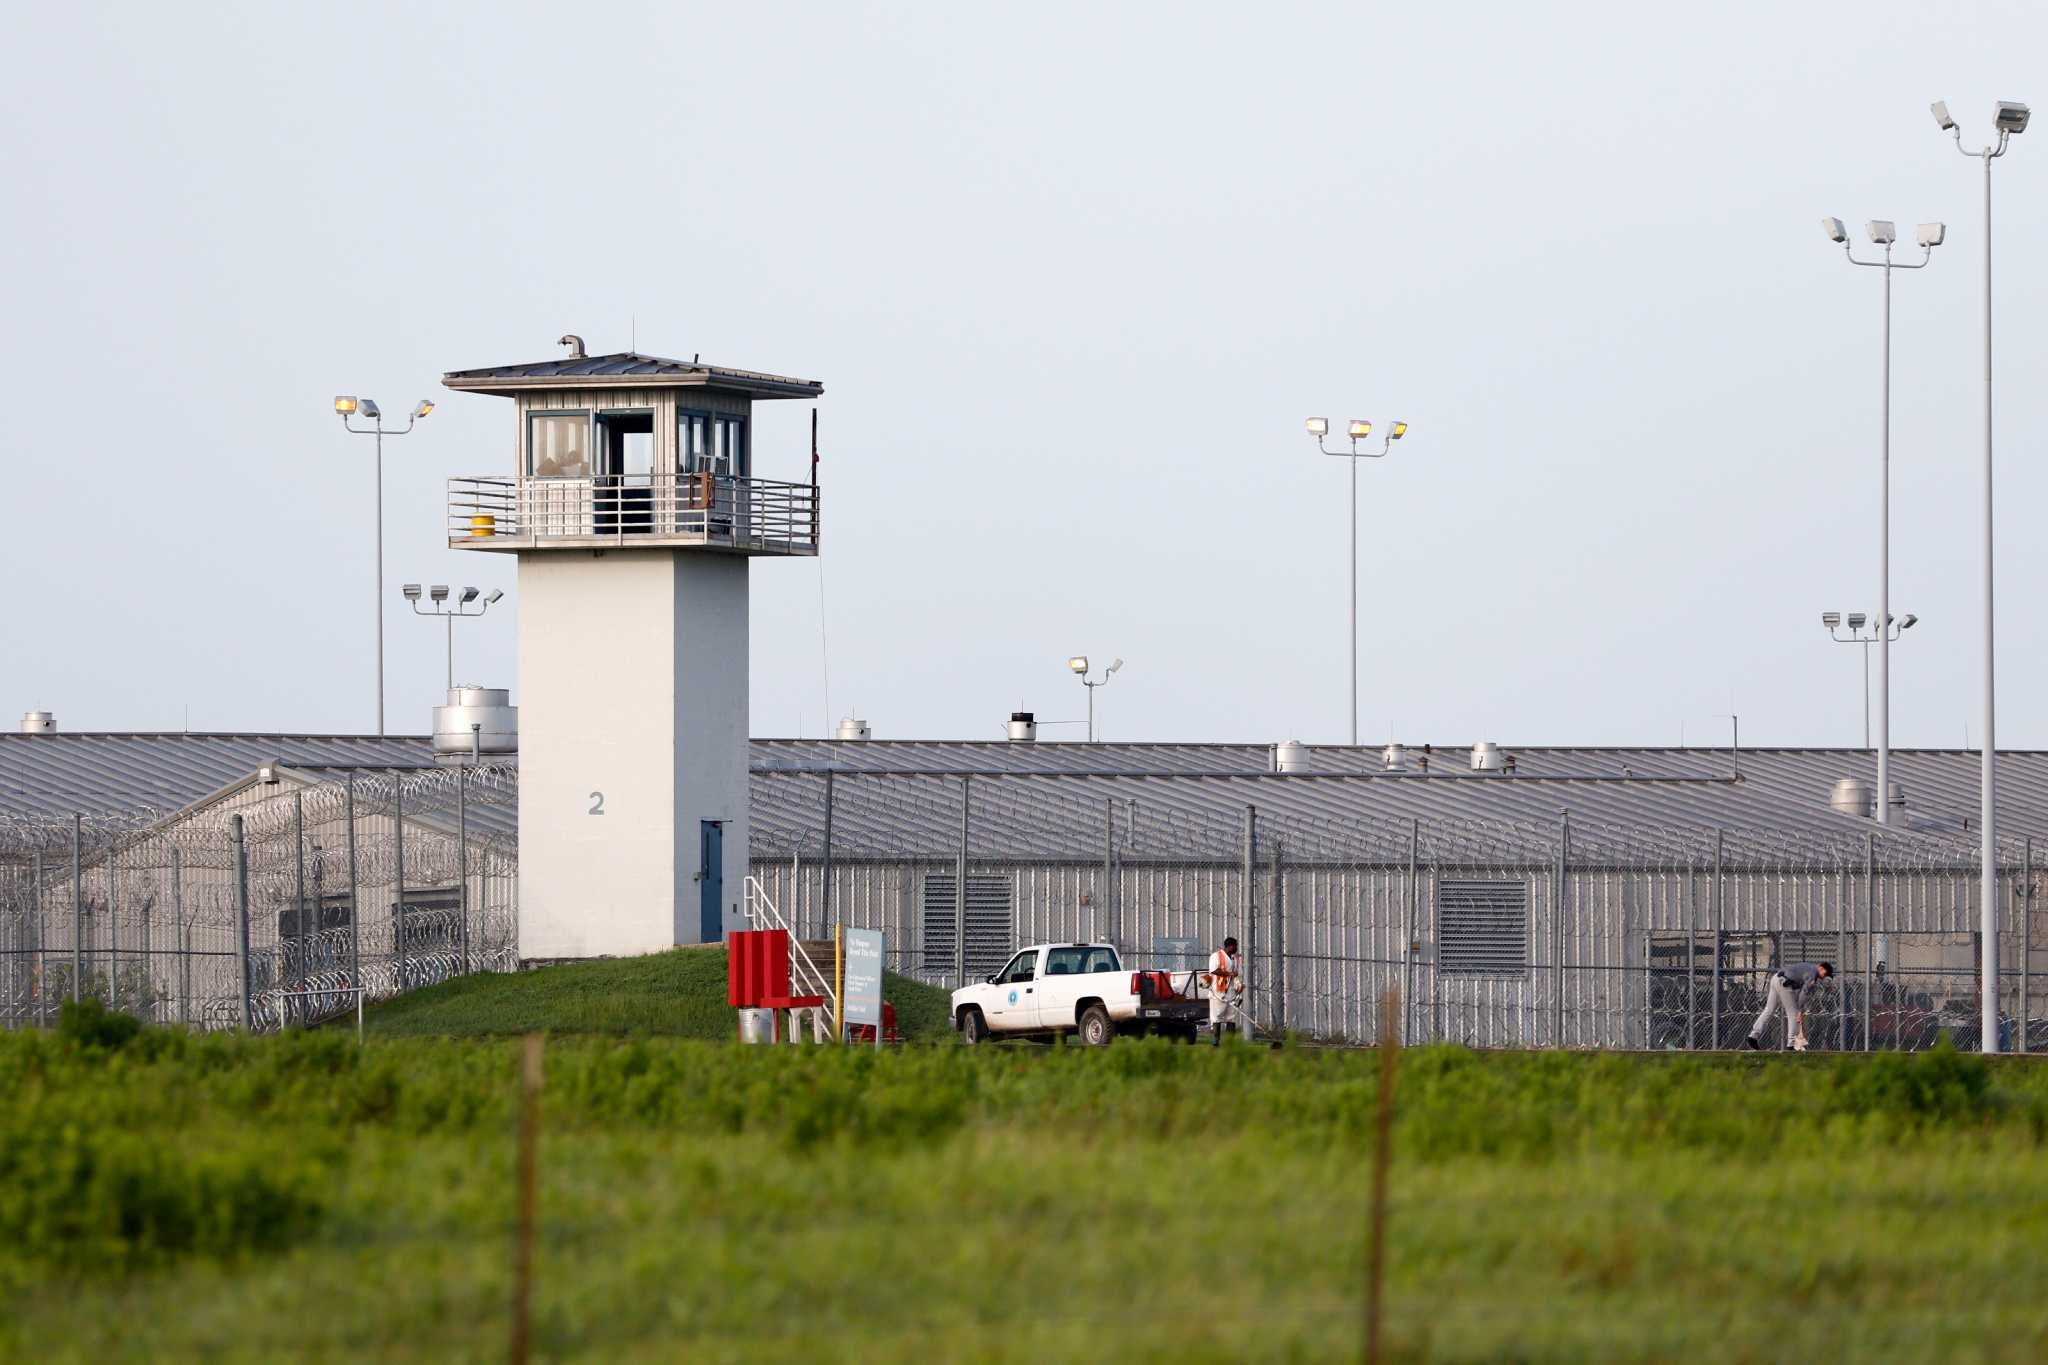 Texas prison officials to begin 1,000 inmate transfers to